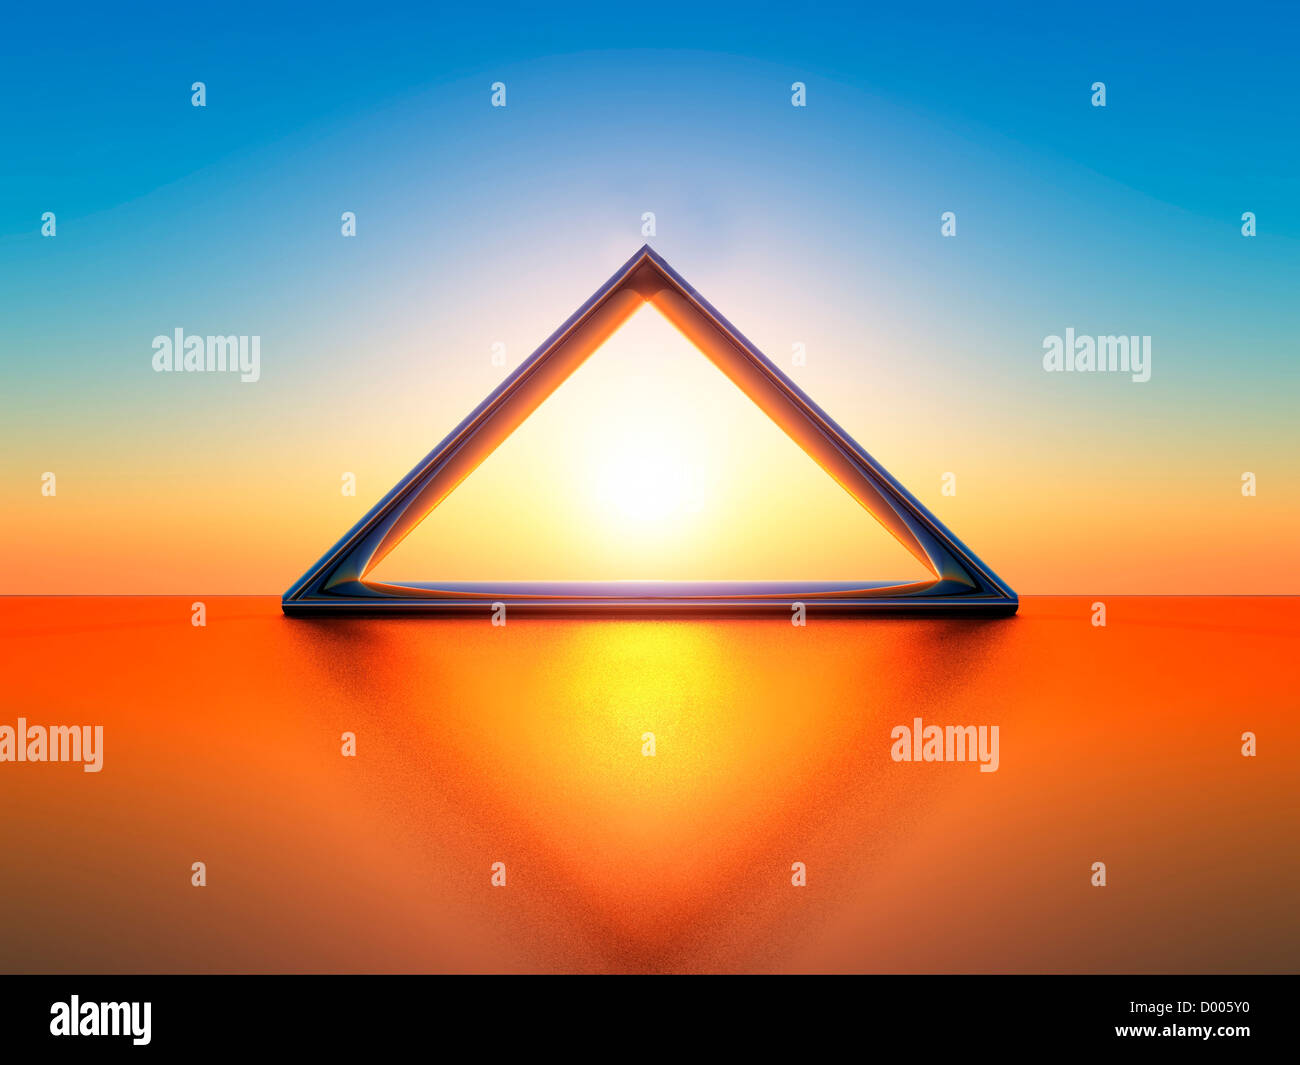 a 3d illustration of a triangle - Stock Image